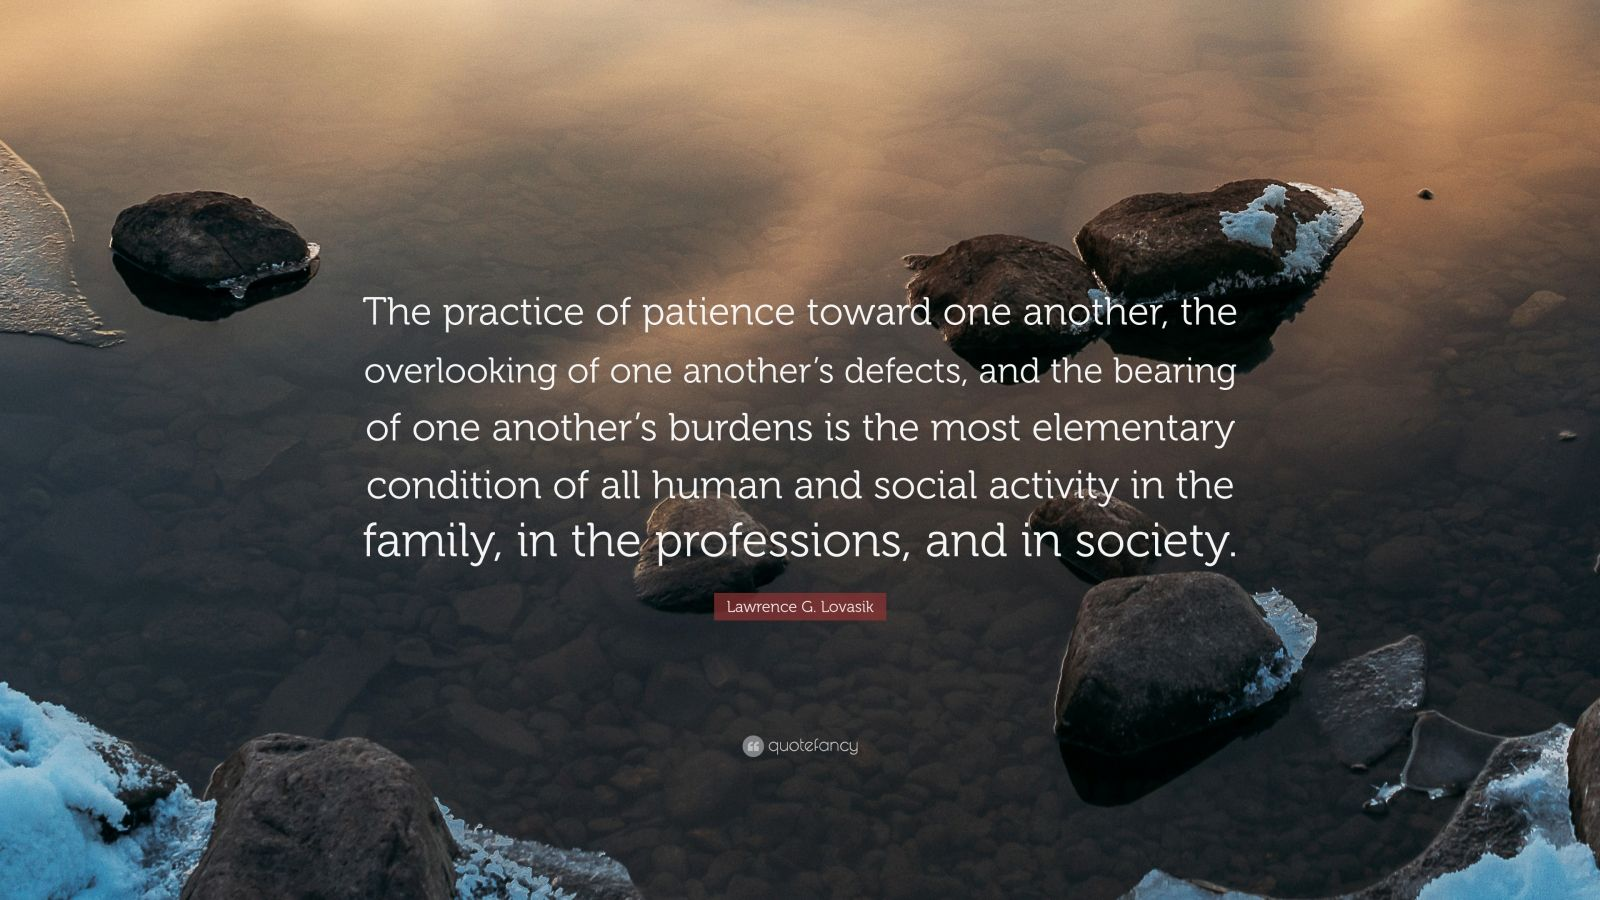 "Lawrence G. Lovasik Quote: ""The practice of patience toward one another, the overlooking of one another's defects, and the bearing of one another's burdens is the most elementary condition of all human and social activity in the family, in the professions, and in society."""